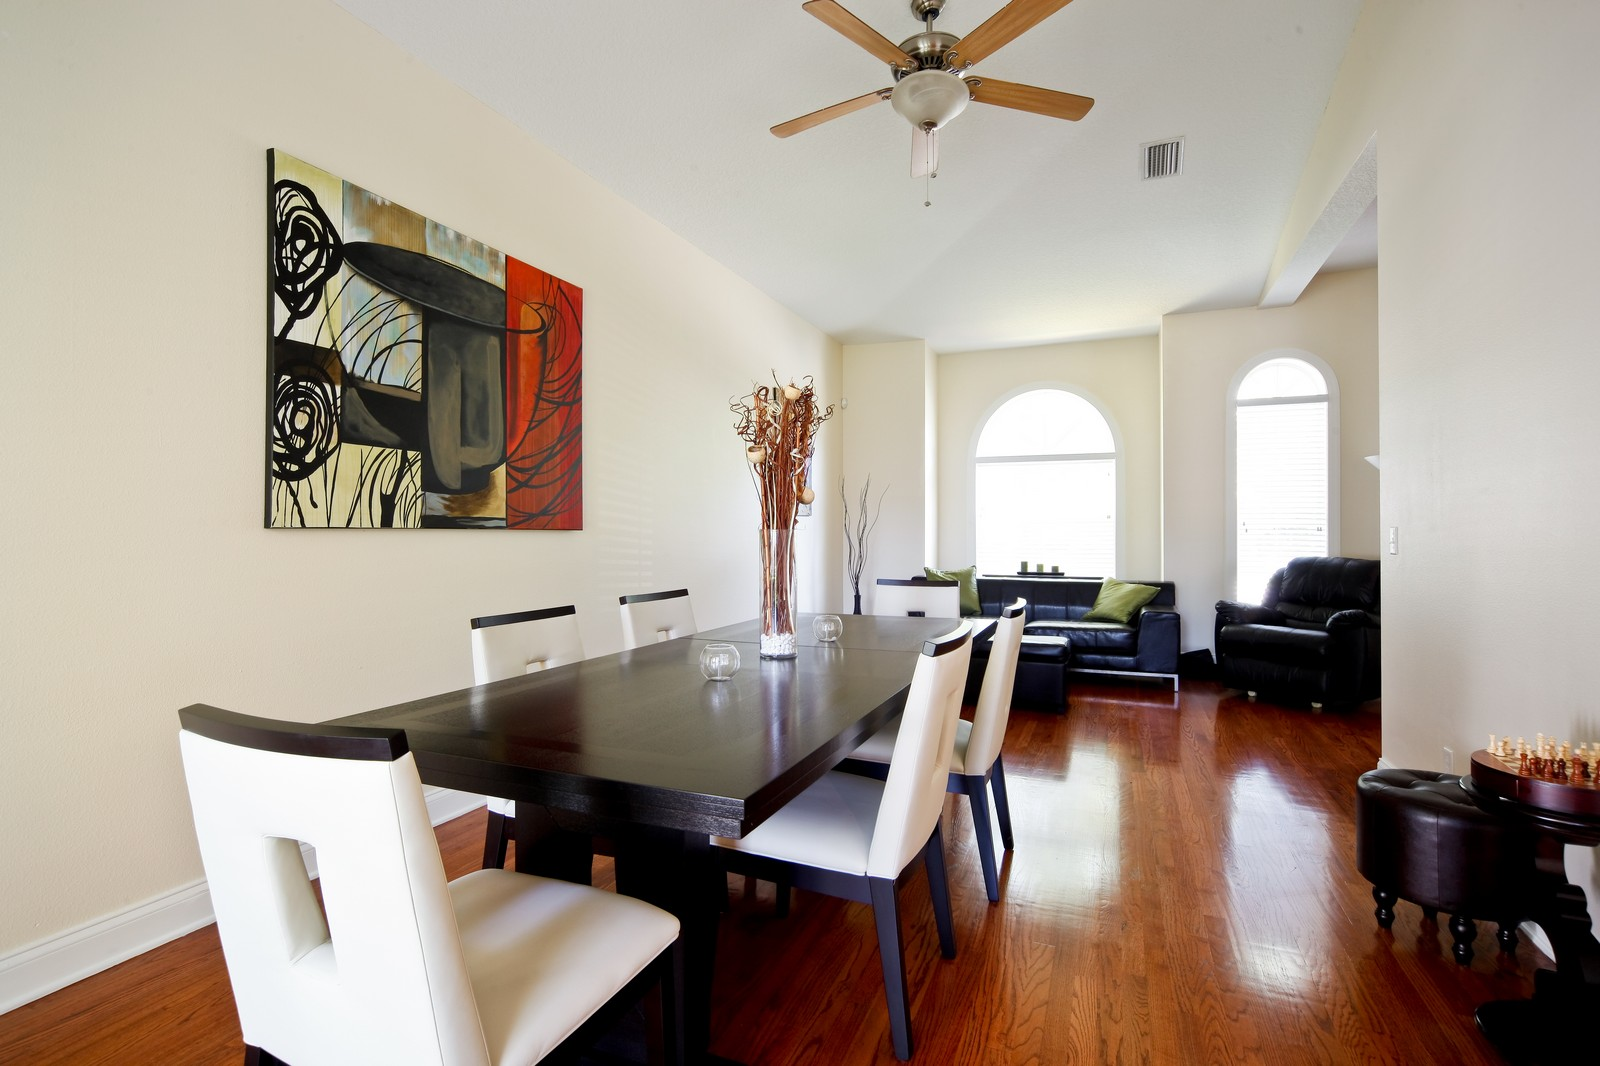 Real Estate Photography - 3812 El Prado Blvd, Tampa, FL, 33629 - Living Room / Dining Room